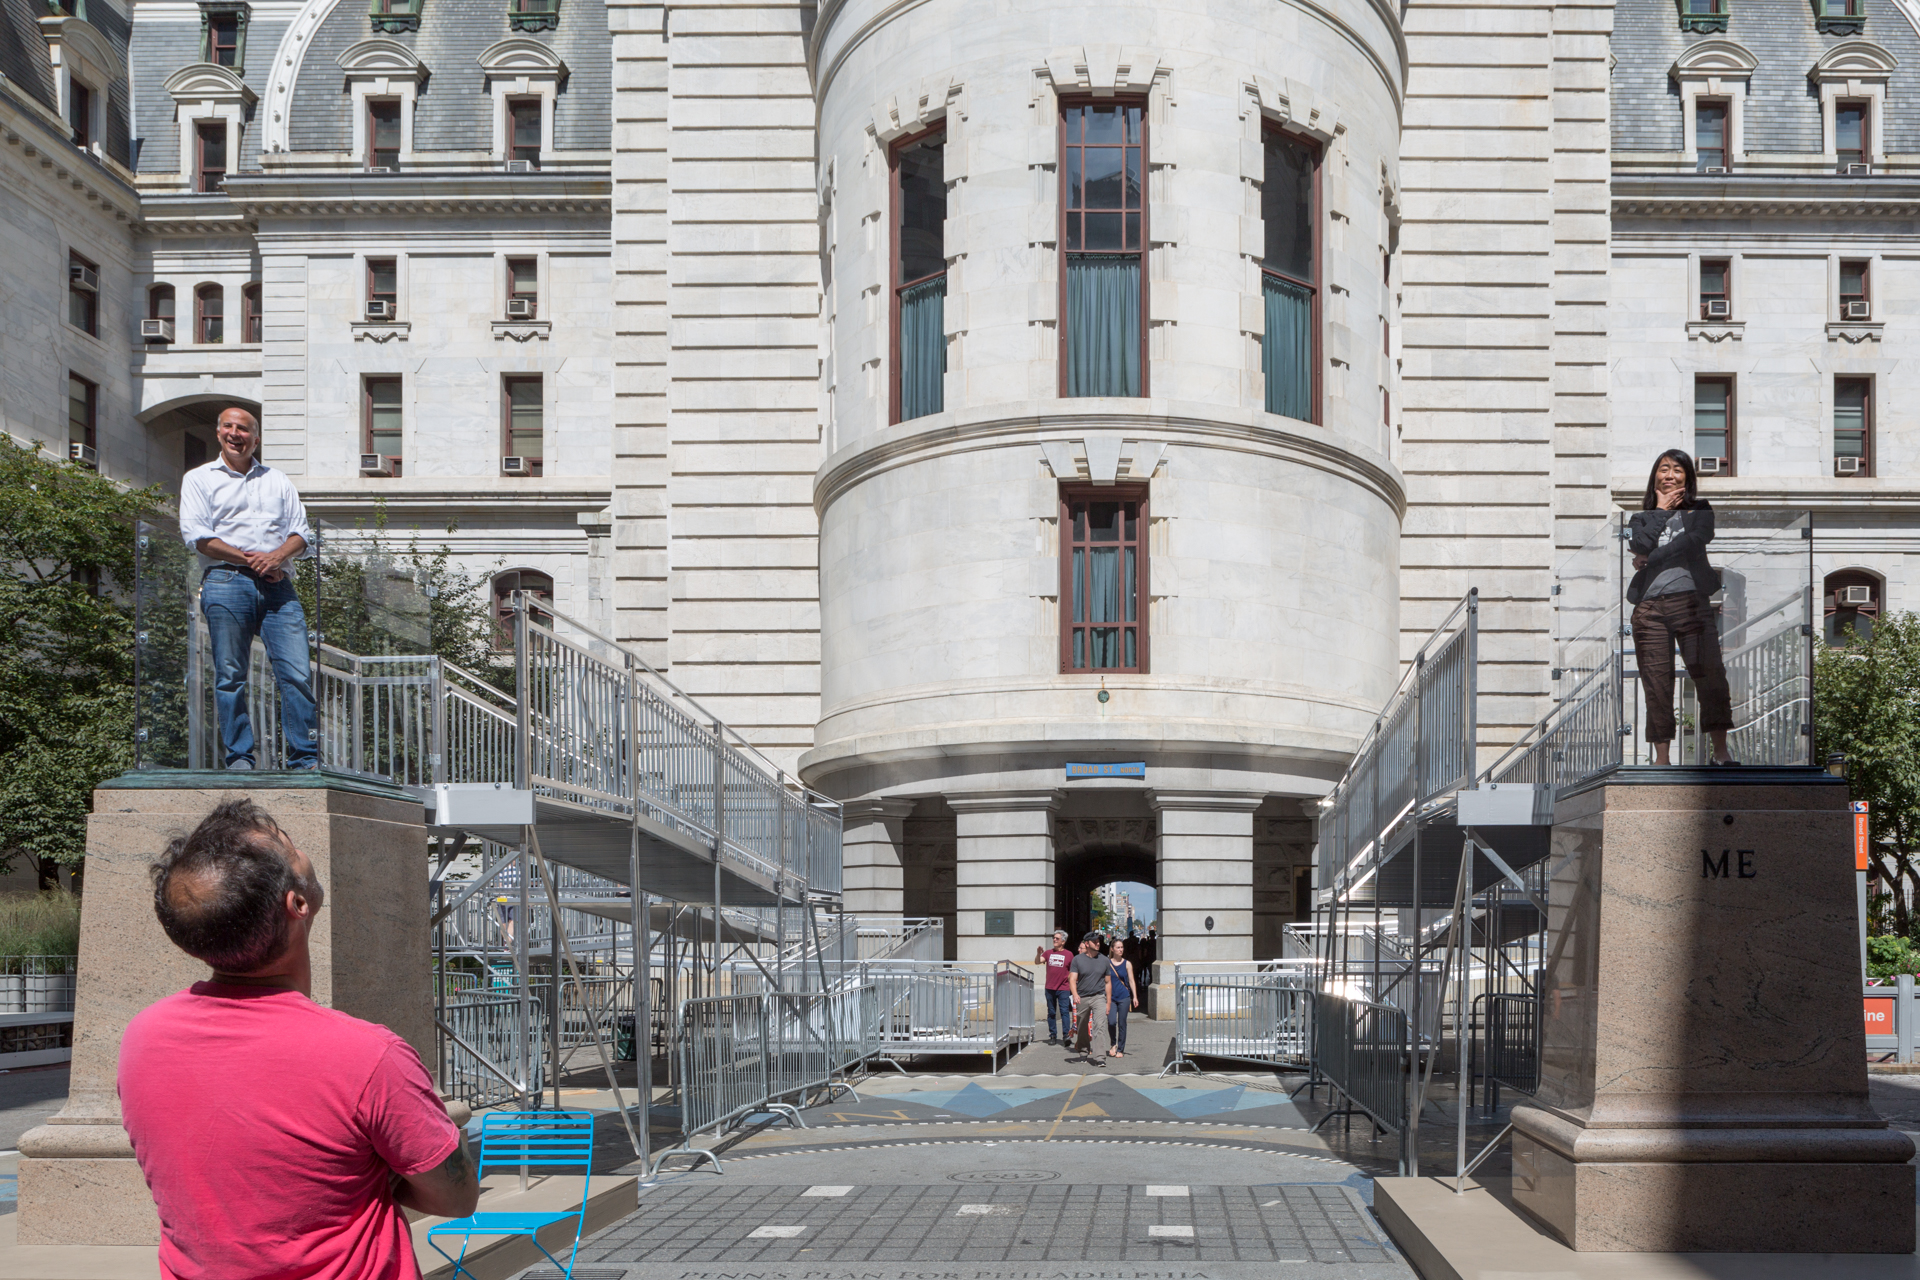 Two Me  Mel Chin Born in 1951 • American • Based in Egypt, North Carolina Granite, steel, bronze, glass, commercial-grade aluminum ramp system, marine plywood, pigment, non-slip coatings, and people City Hall   Photo: Steve Weinik/Mural Arts Philadelphia